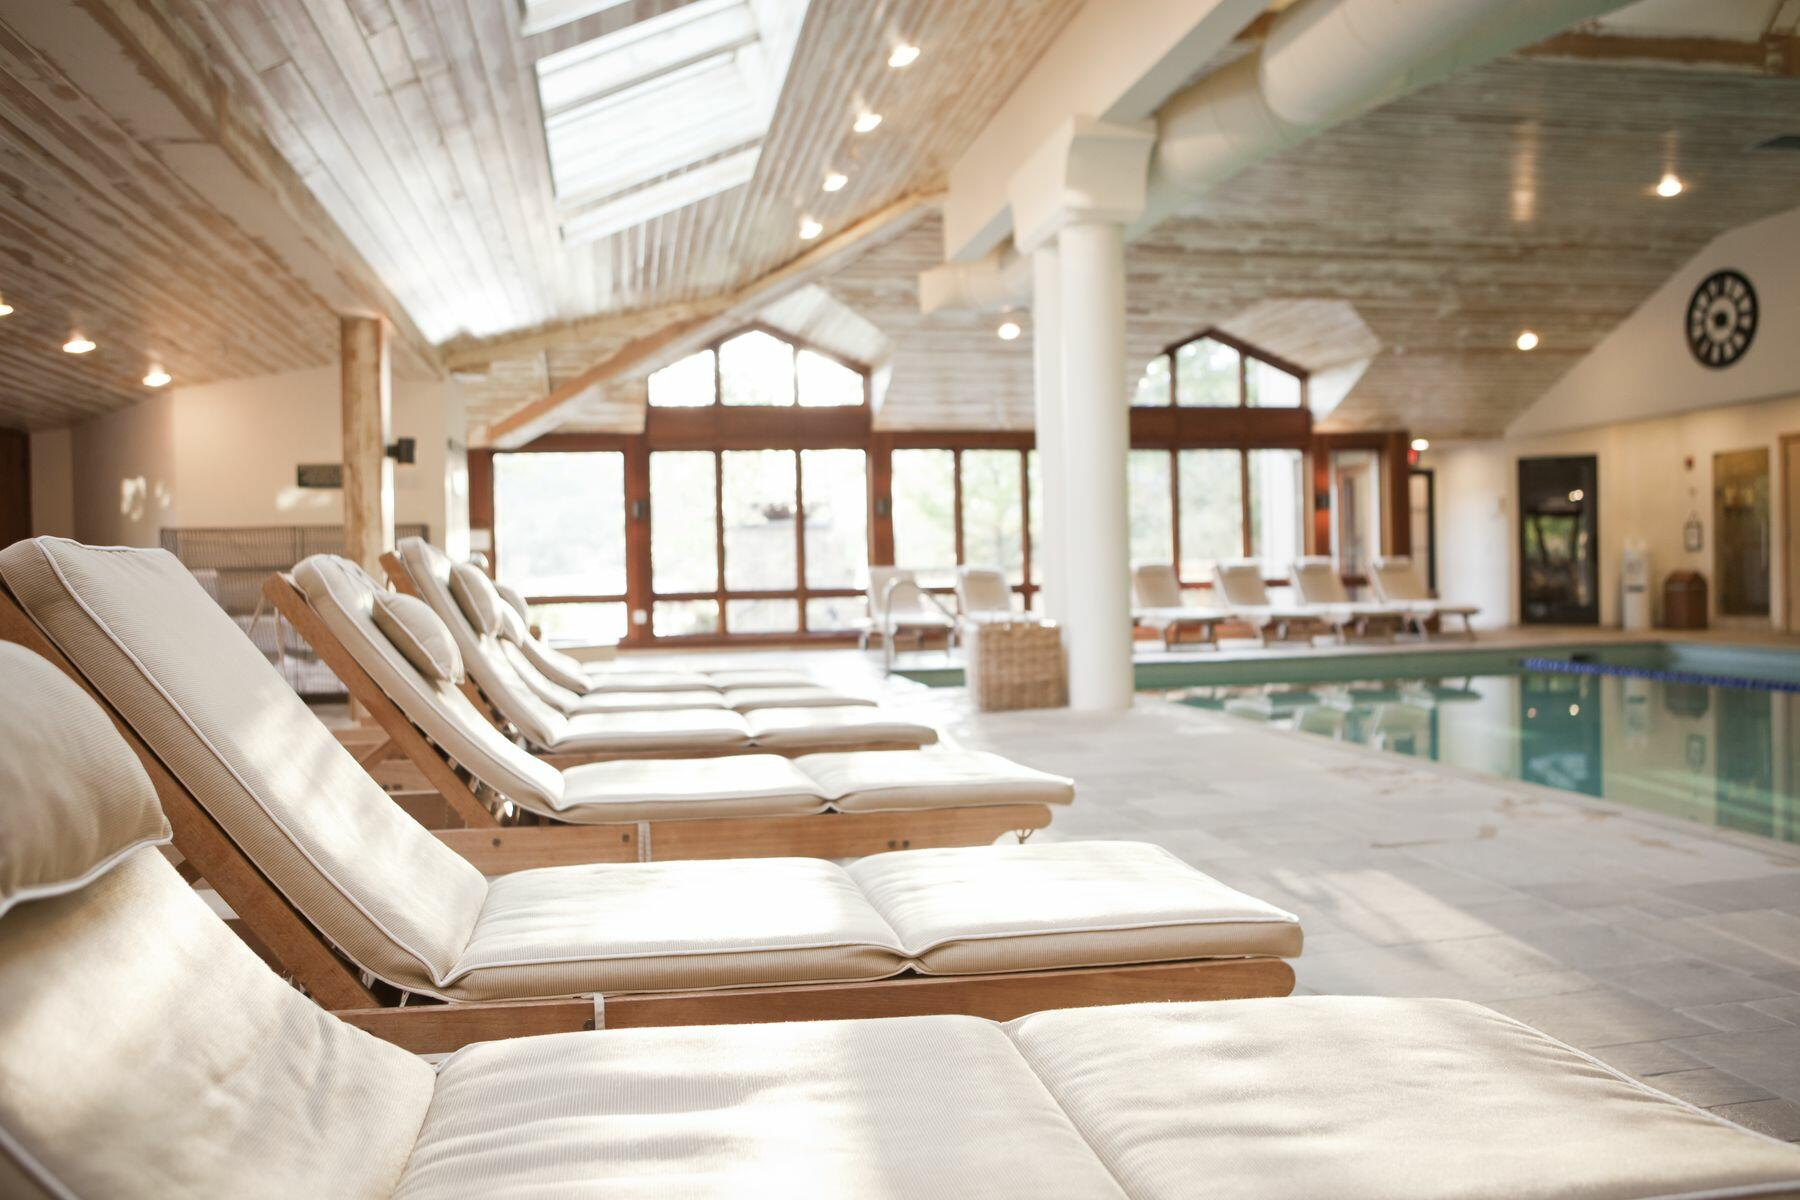 A line of spa chairs along the edge of a spa pool.